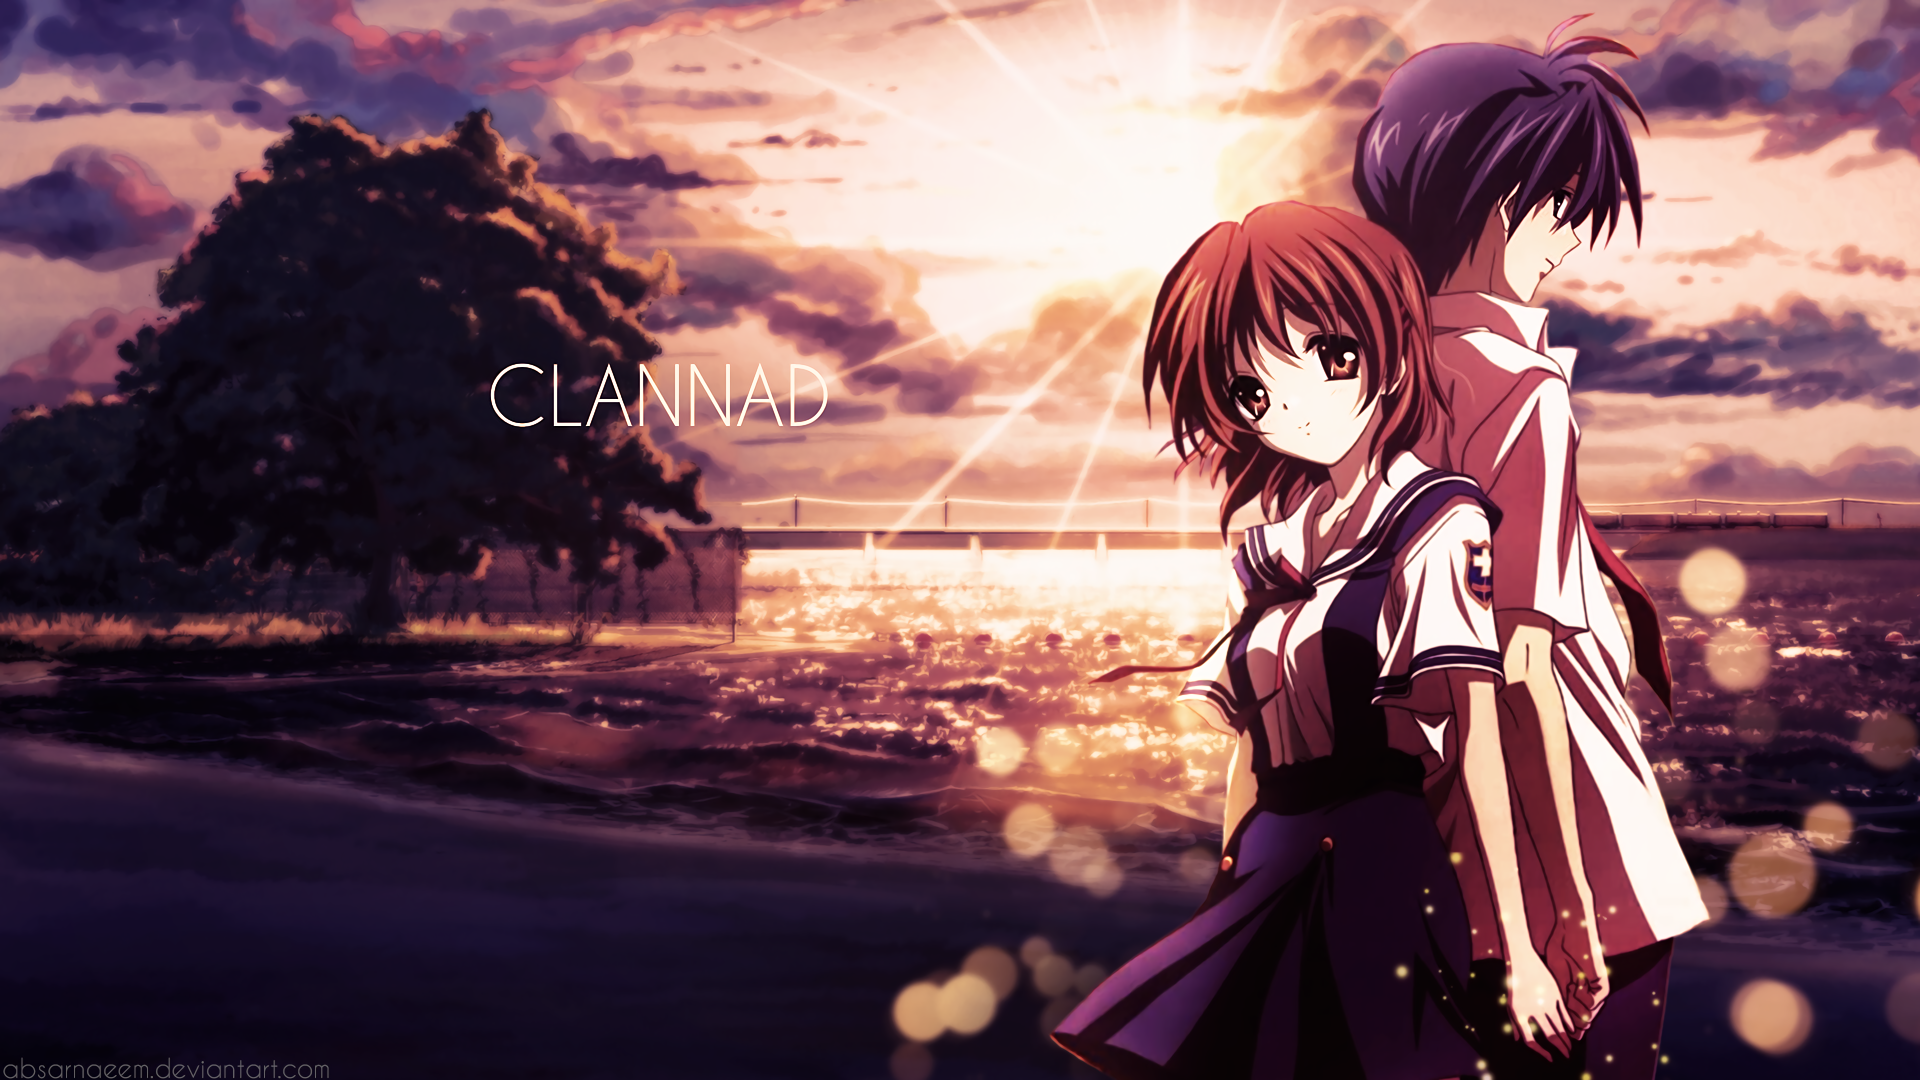 Clannad Wallpapers Top Free Clannad Backgrounds Wallpaperaccess